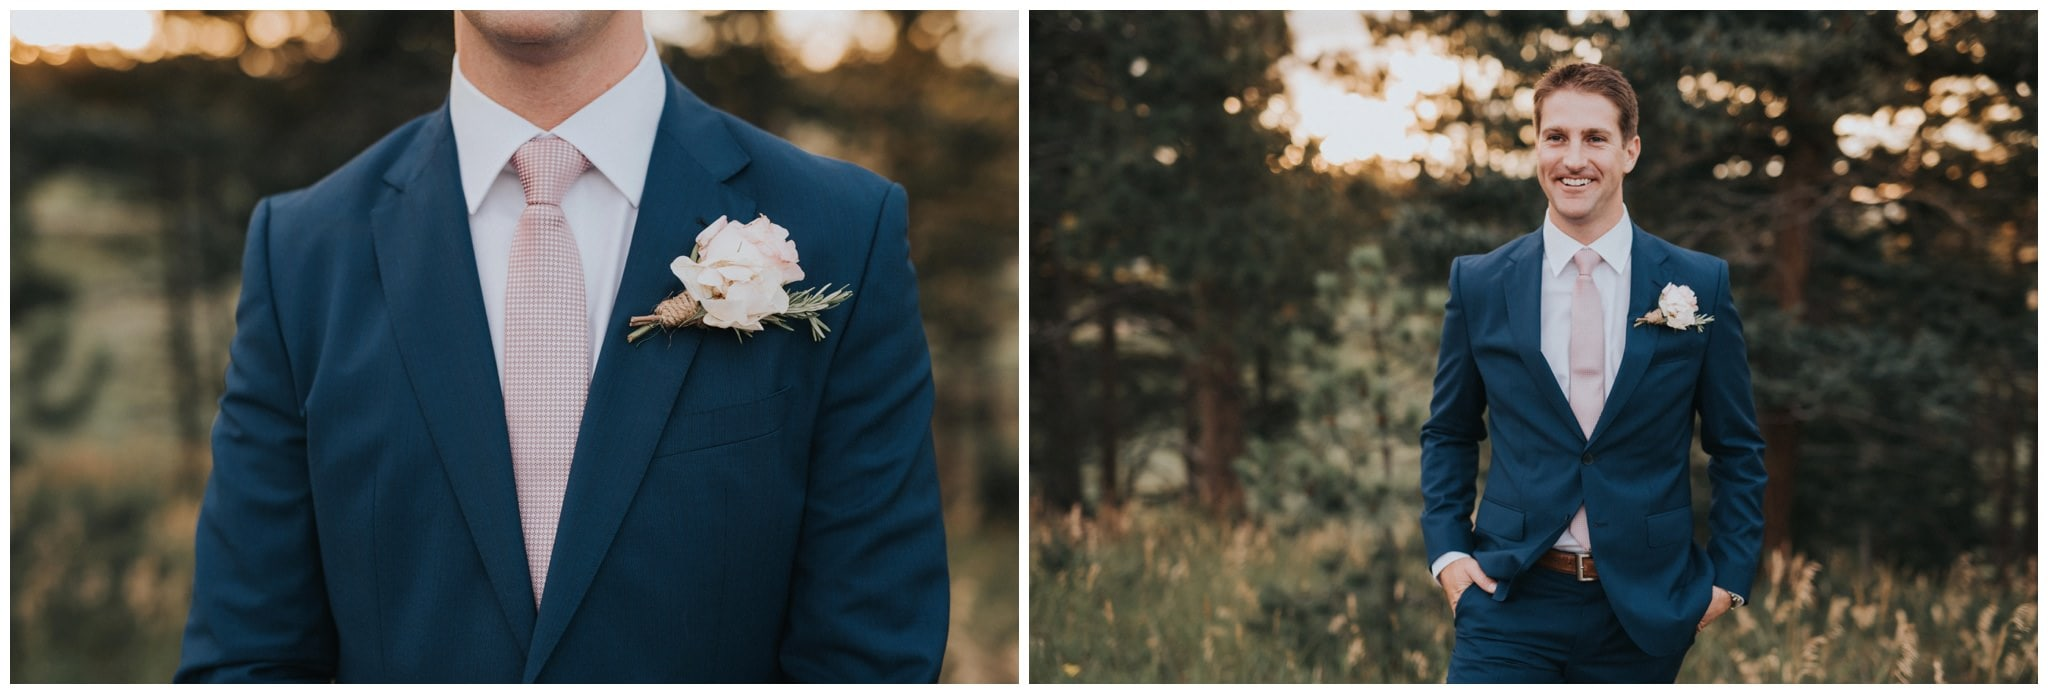 union station denver wedding, union station wedding, union station, denver wedding, denver wedding photographer, pines at genesee, the pines at genesee, the pines at genesee wedding, colorado wedding photographer, denver hotel wedding